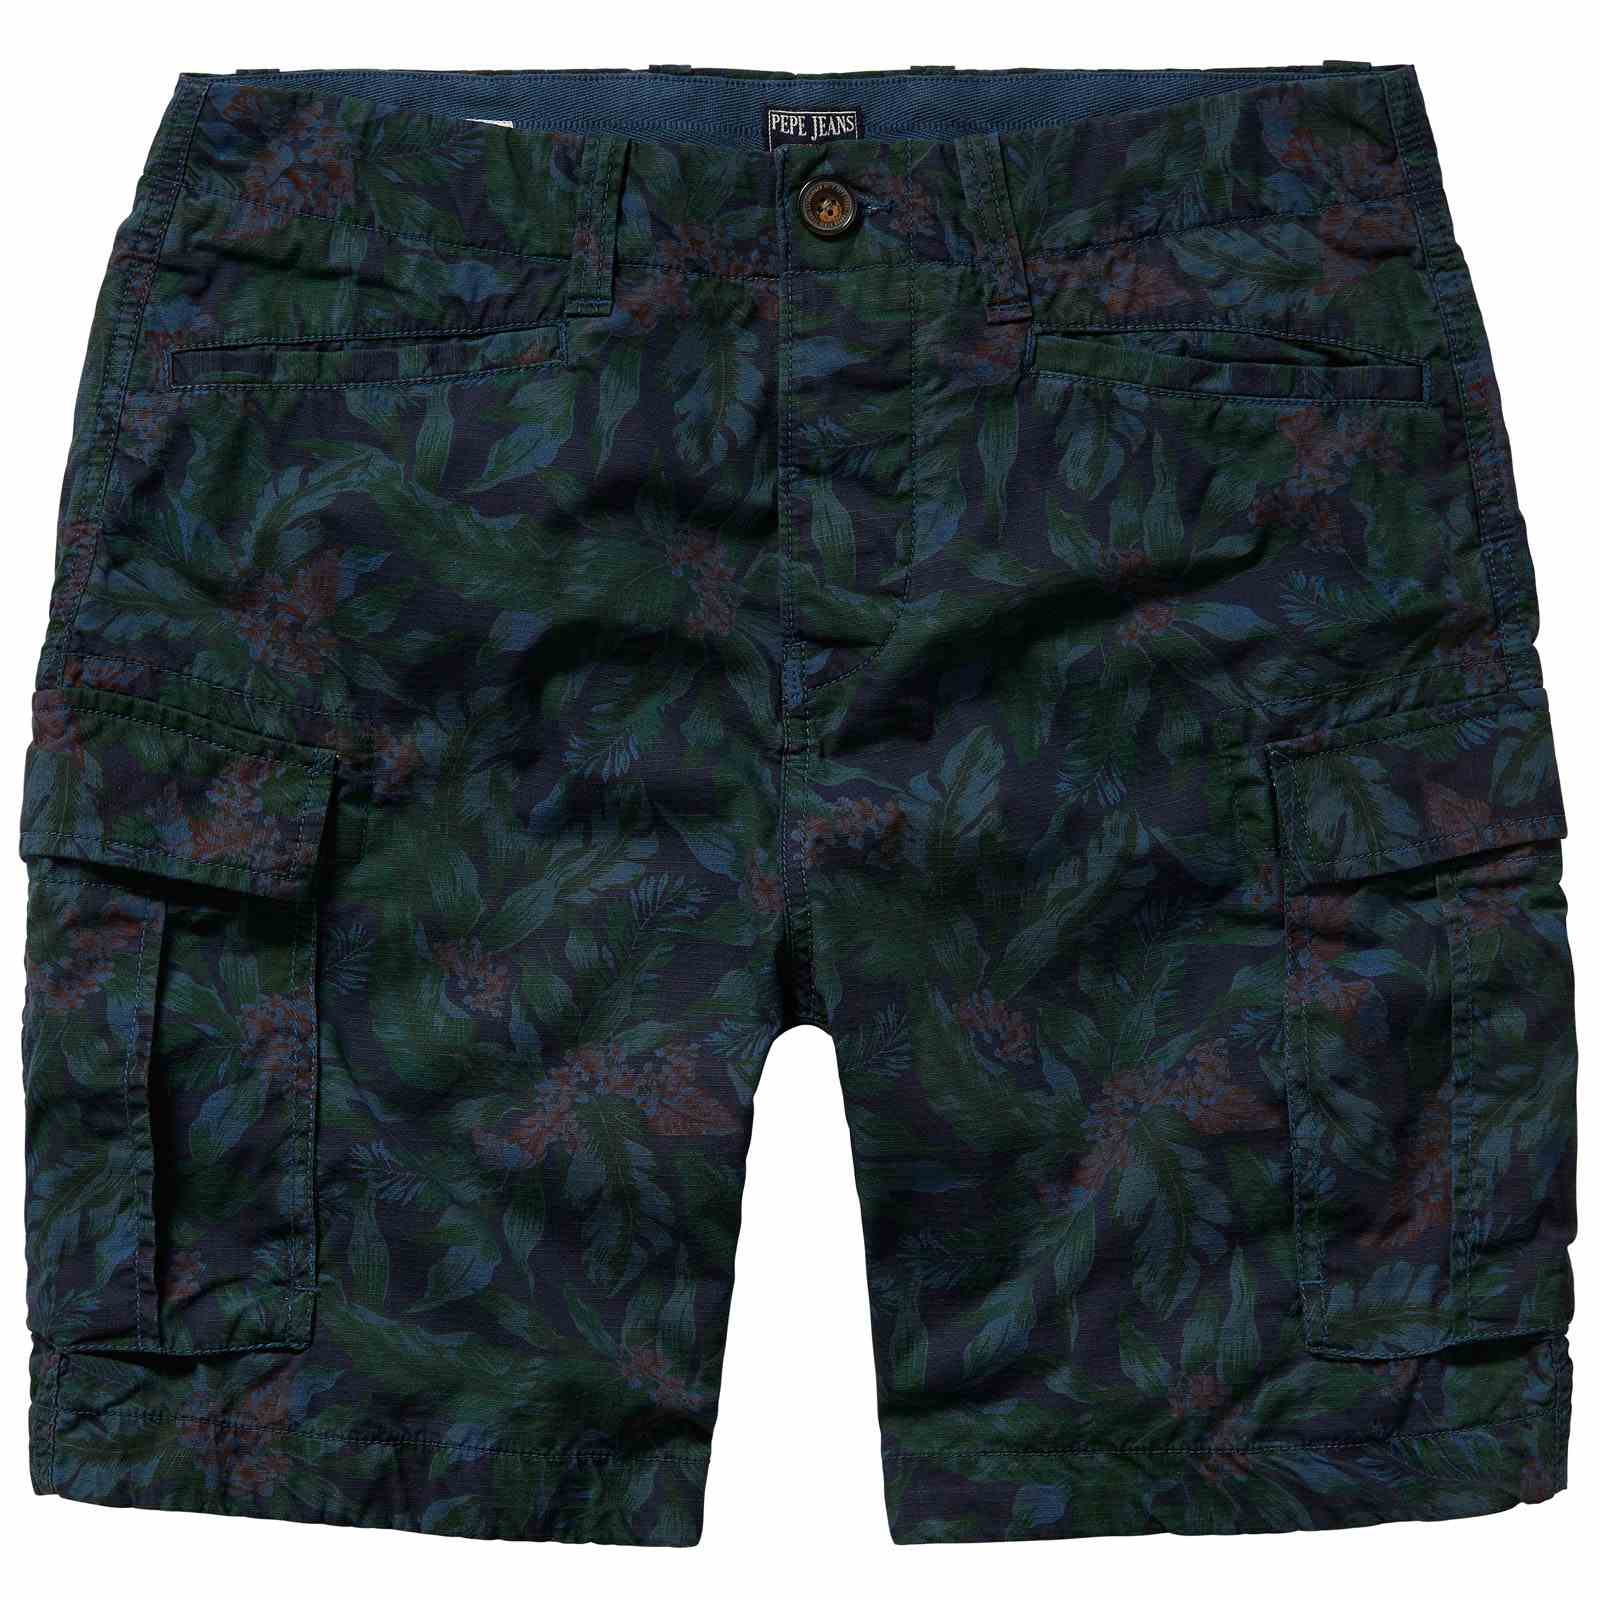 Pepe Jeans London Journey Flower Short - Short, Bermuda - bleu marine